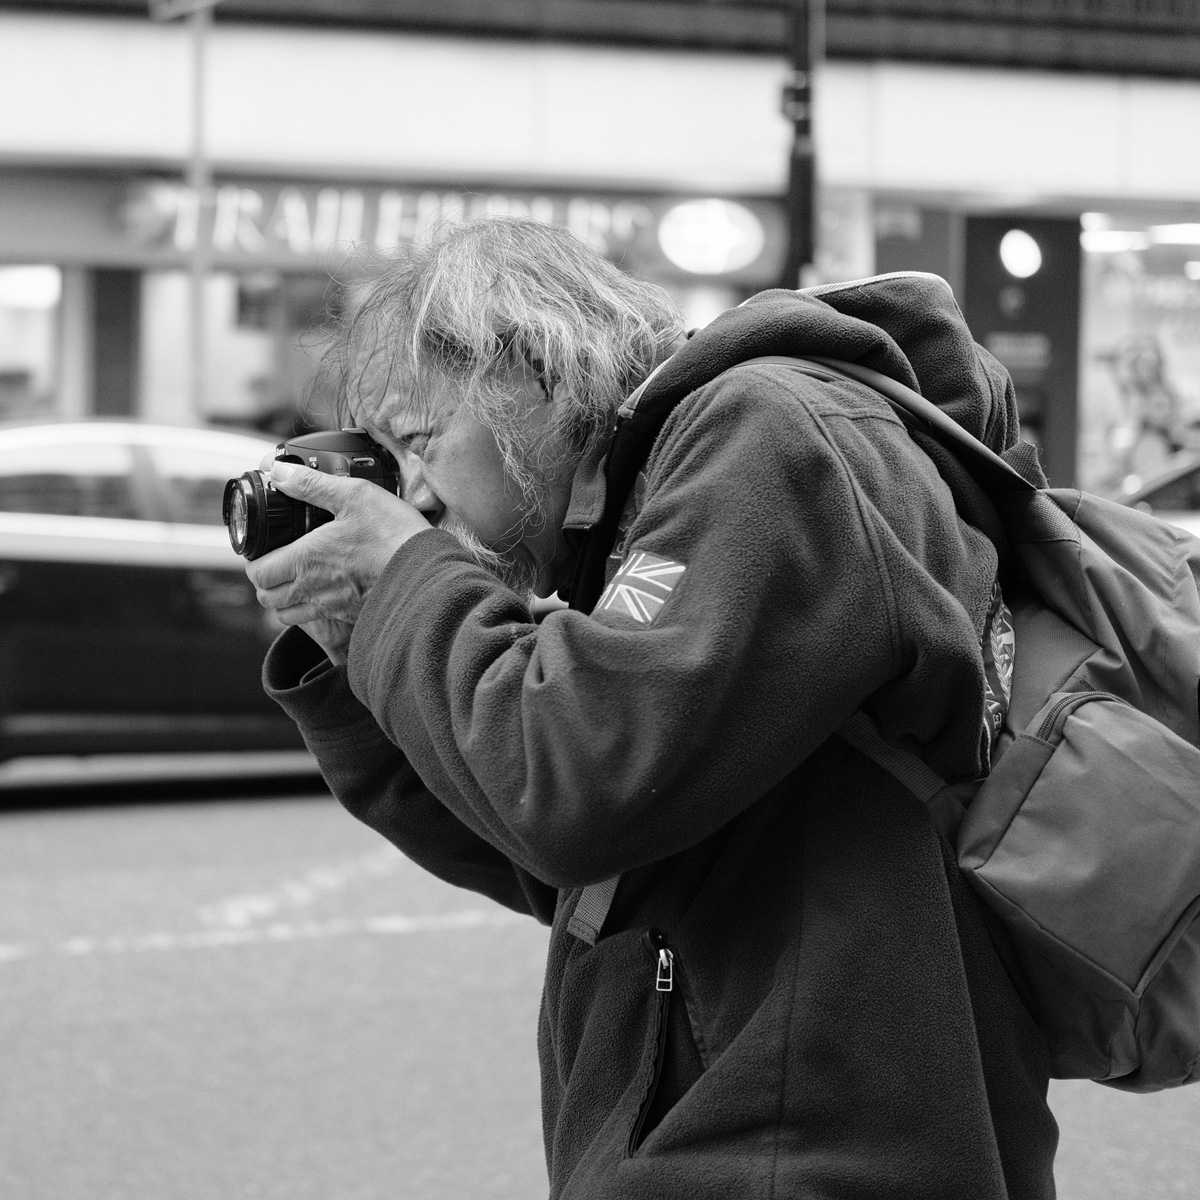 People of Manchester - man taking picture